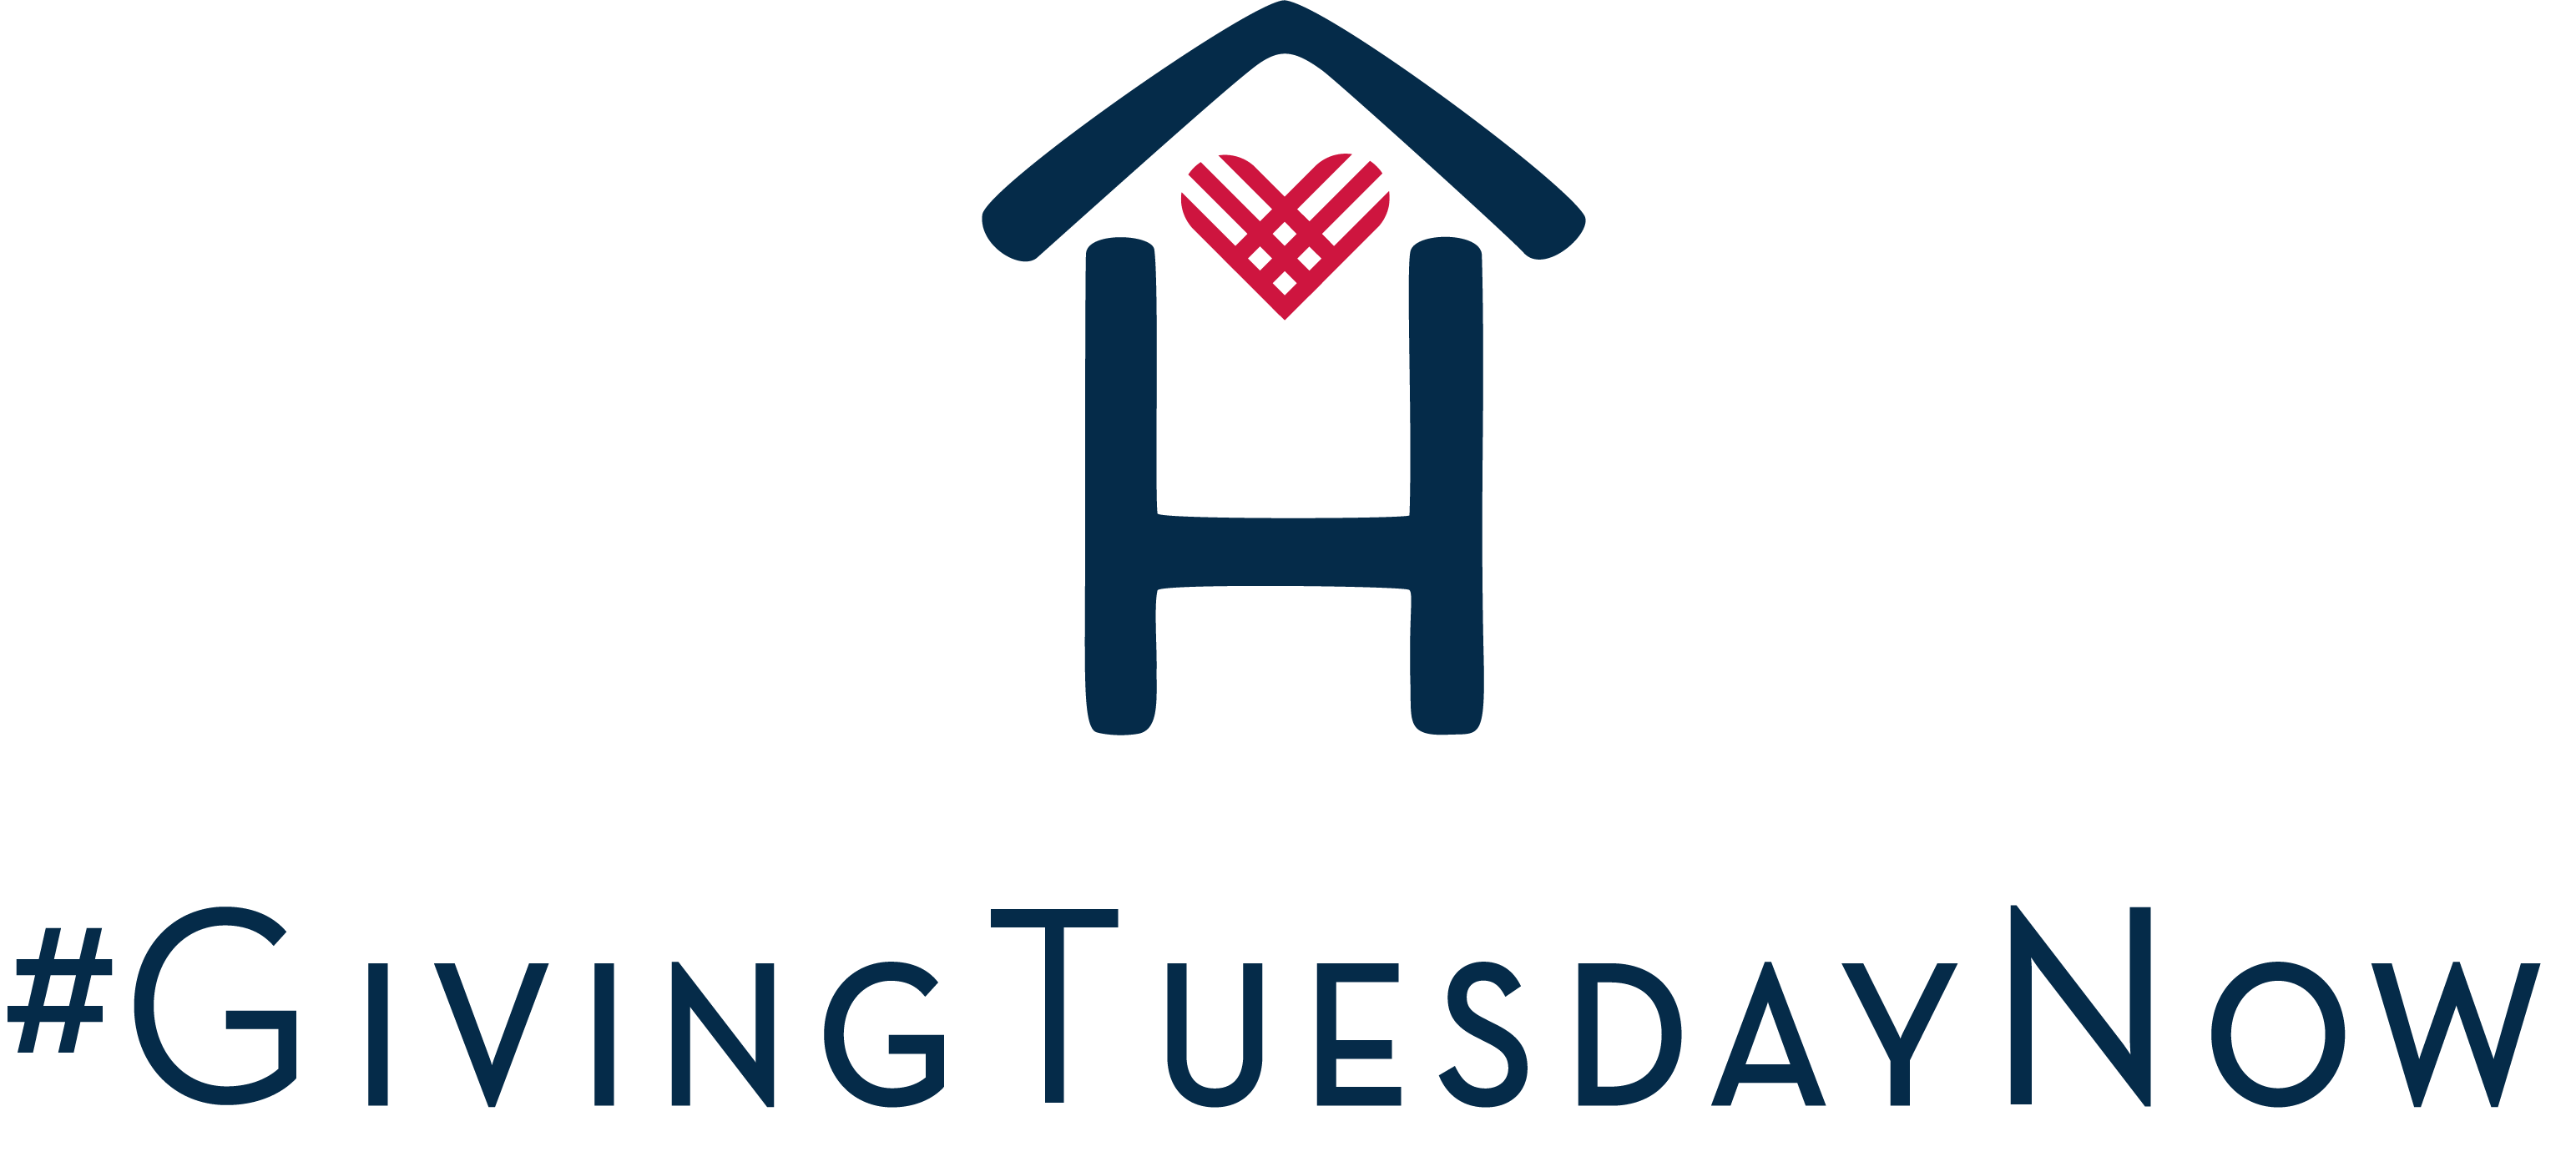 Giving tuesday now   full logo